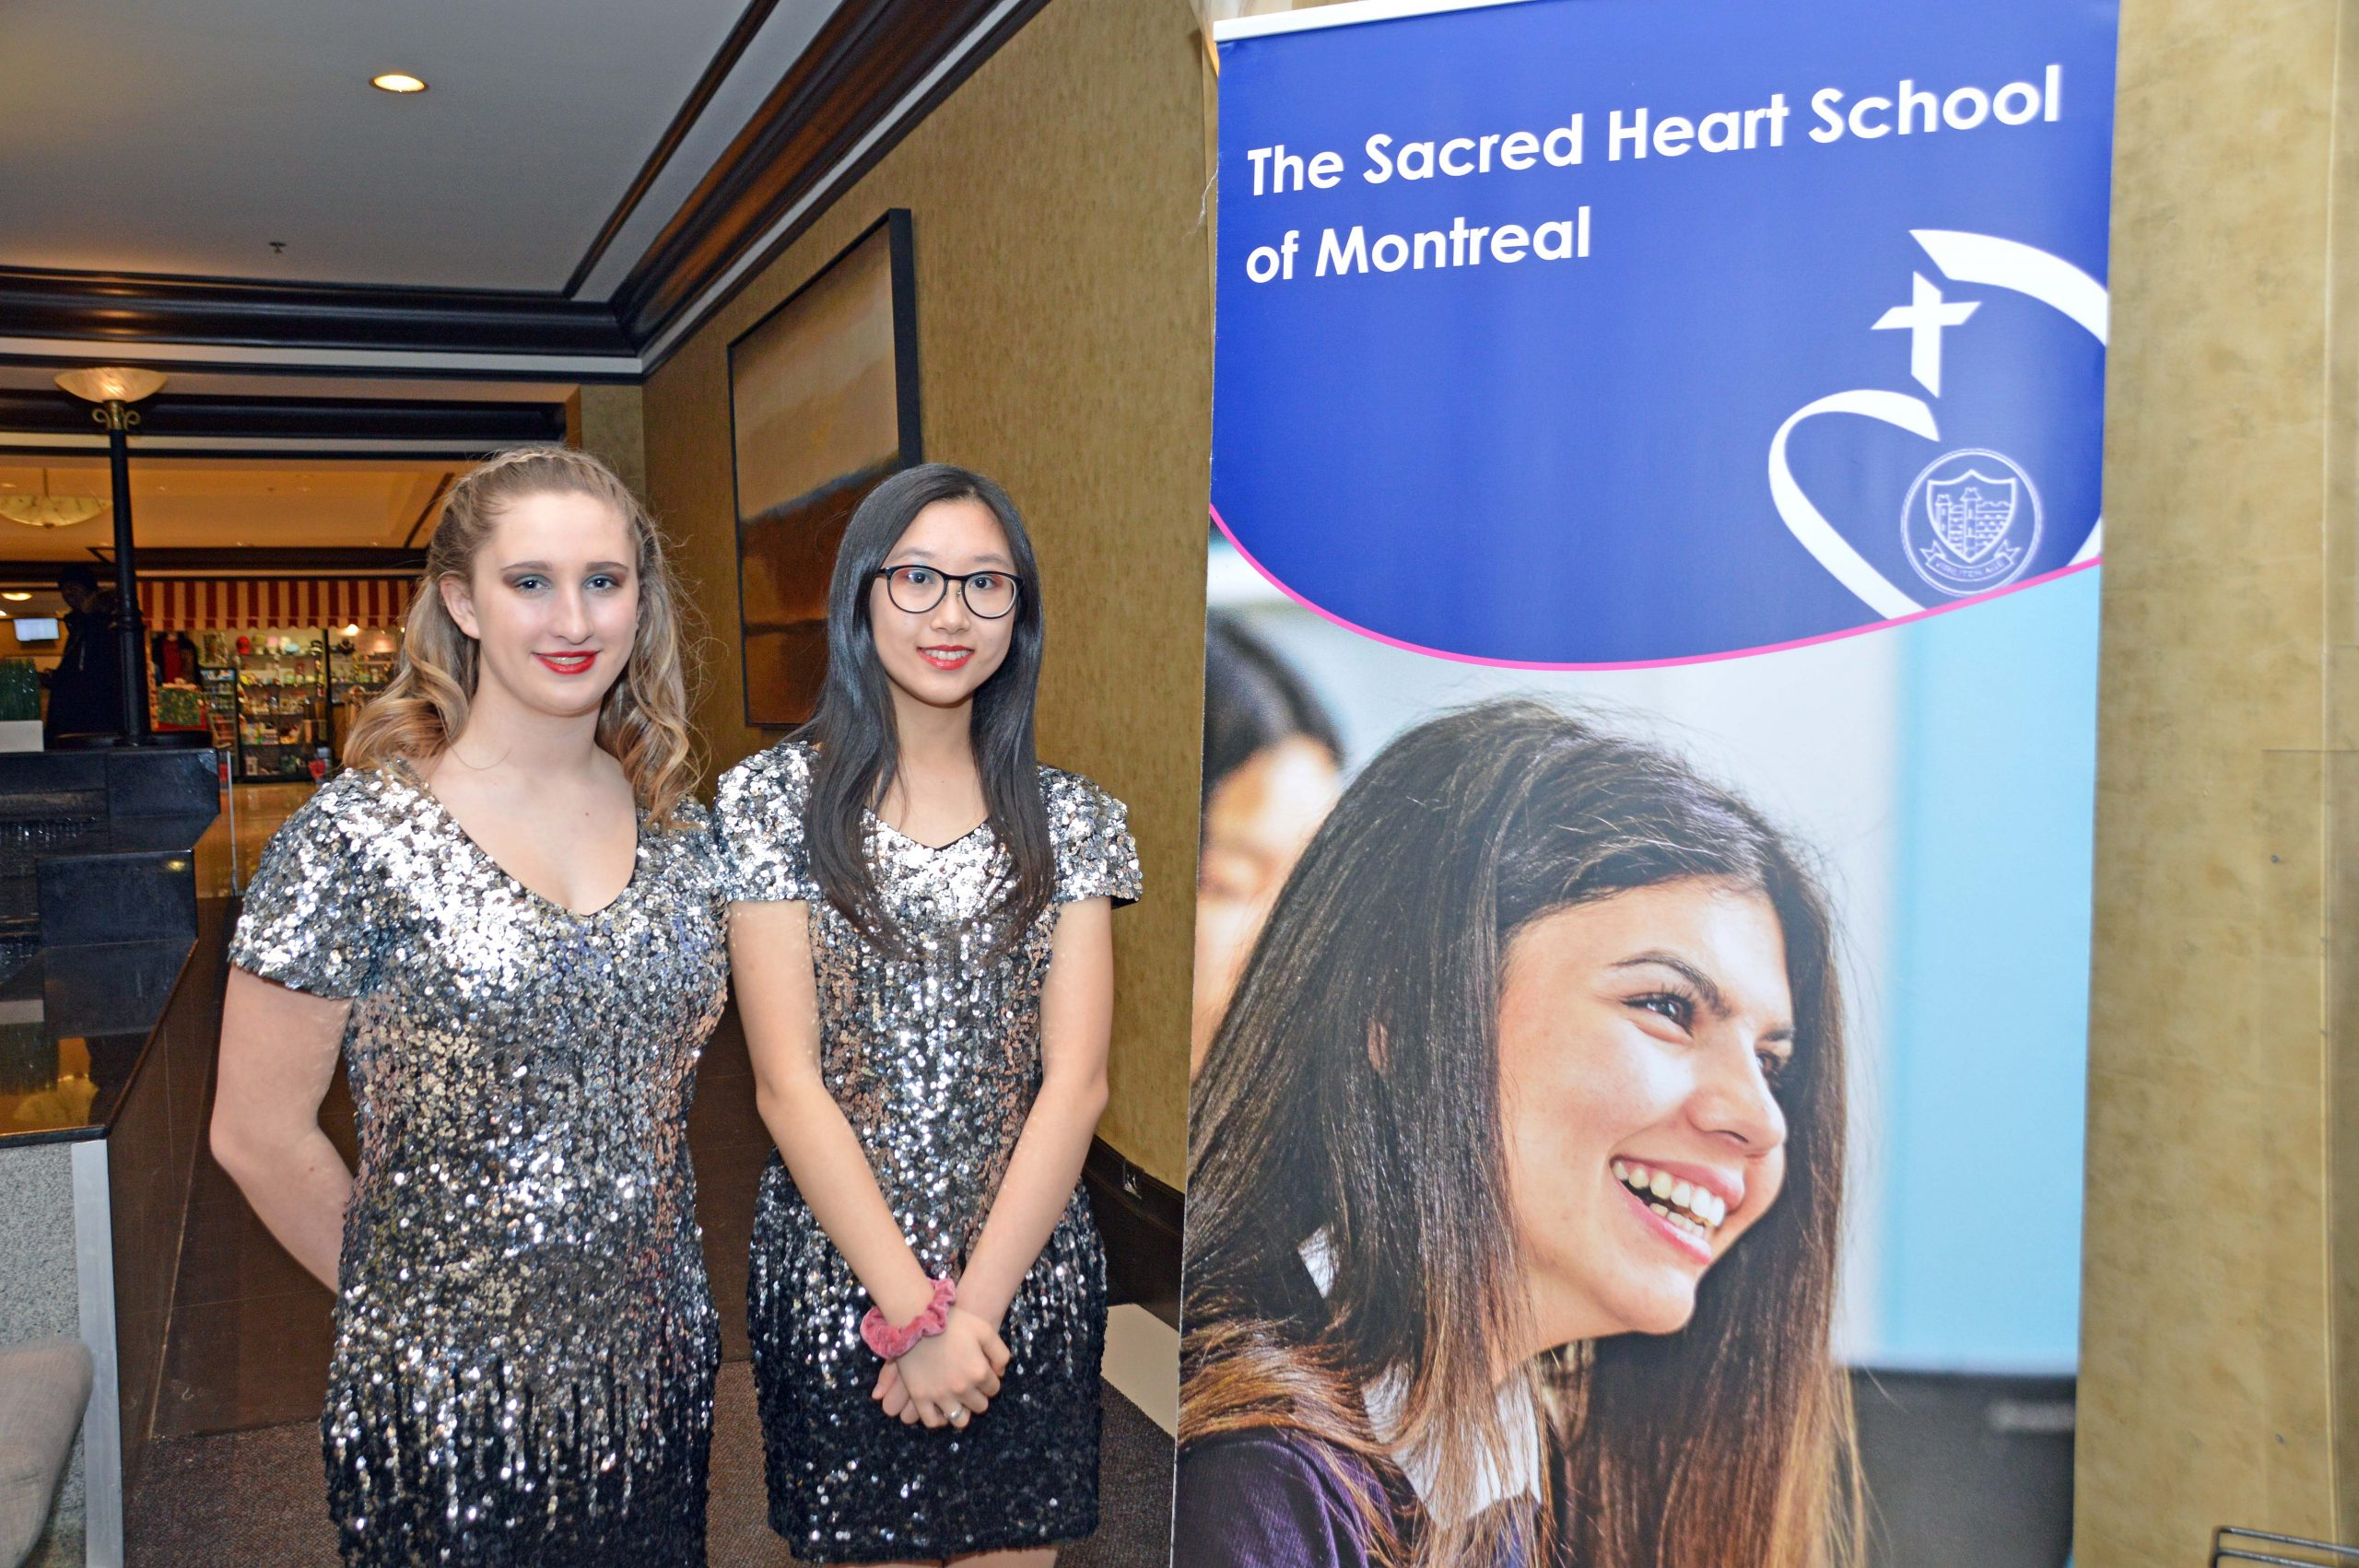 Sacred Heart School raises $60,000 for improvement projects